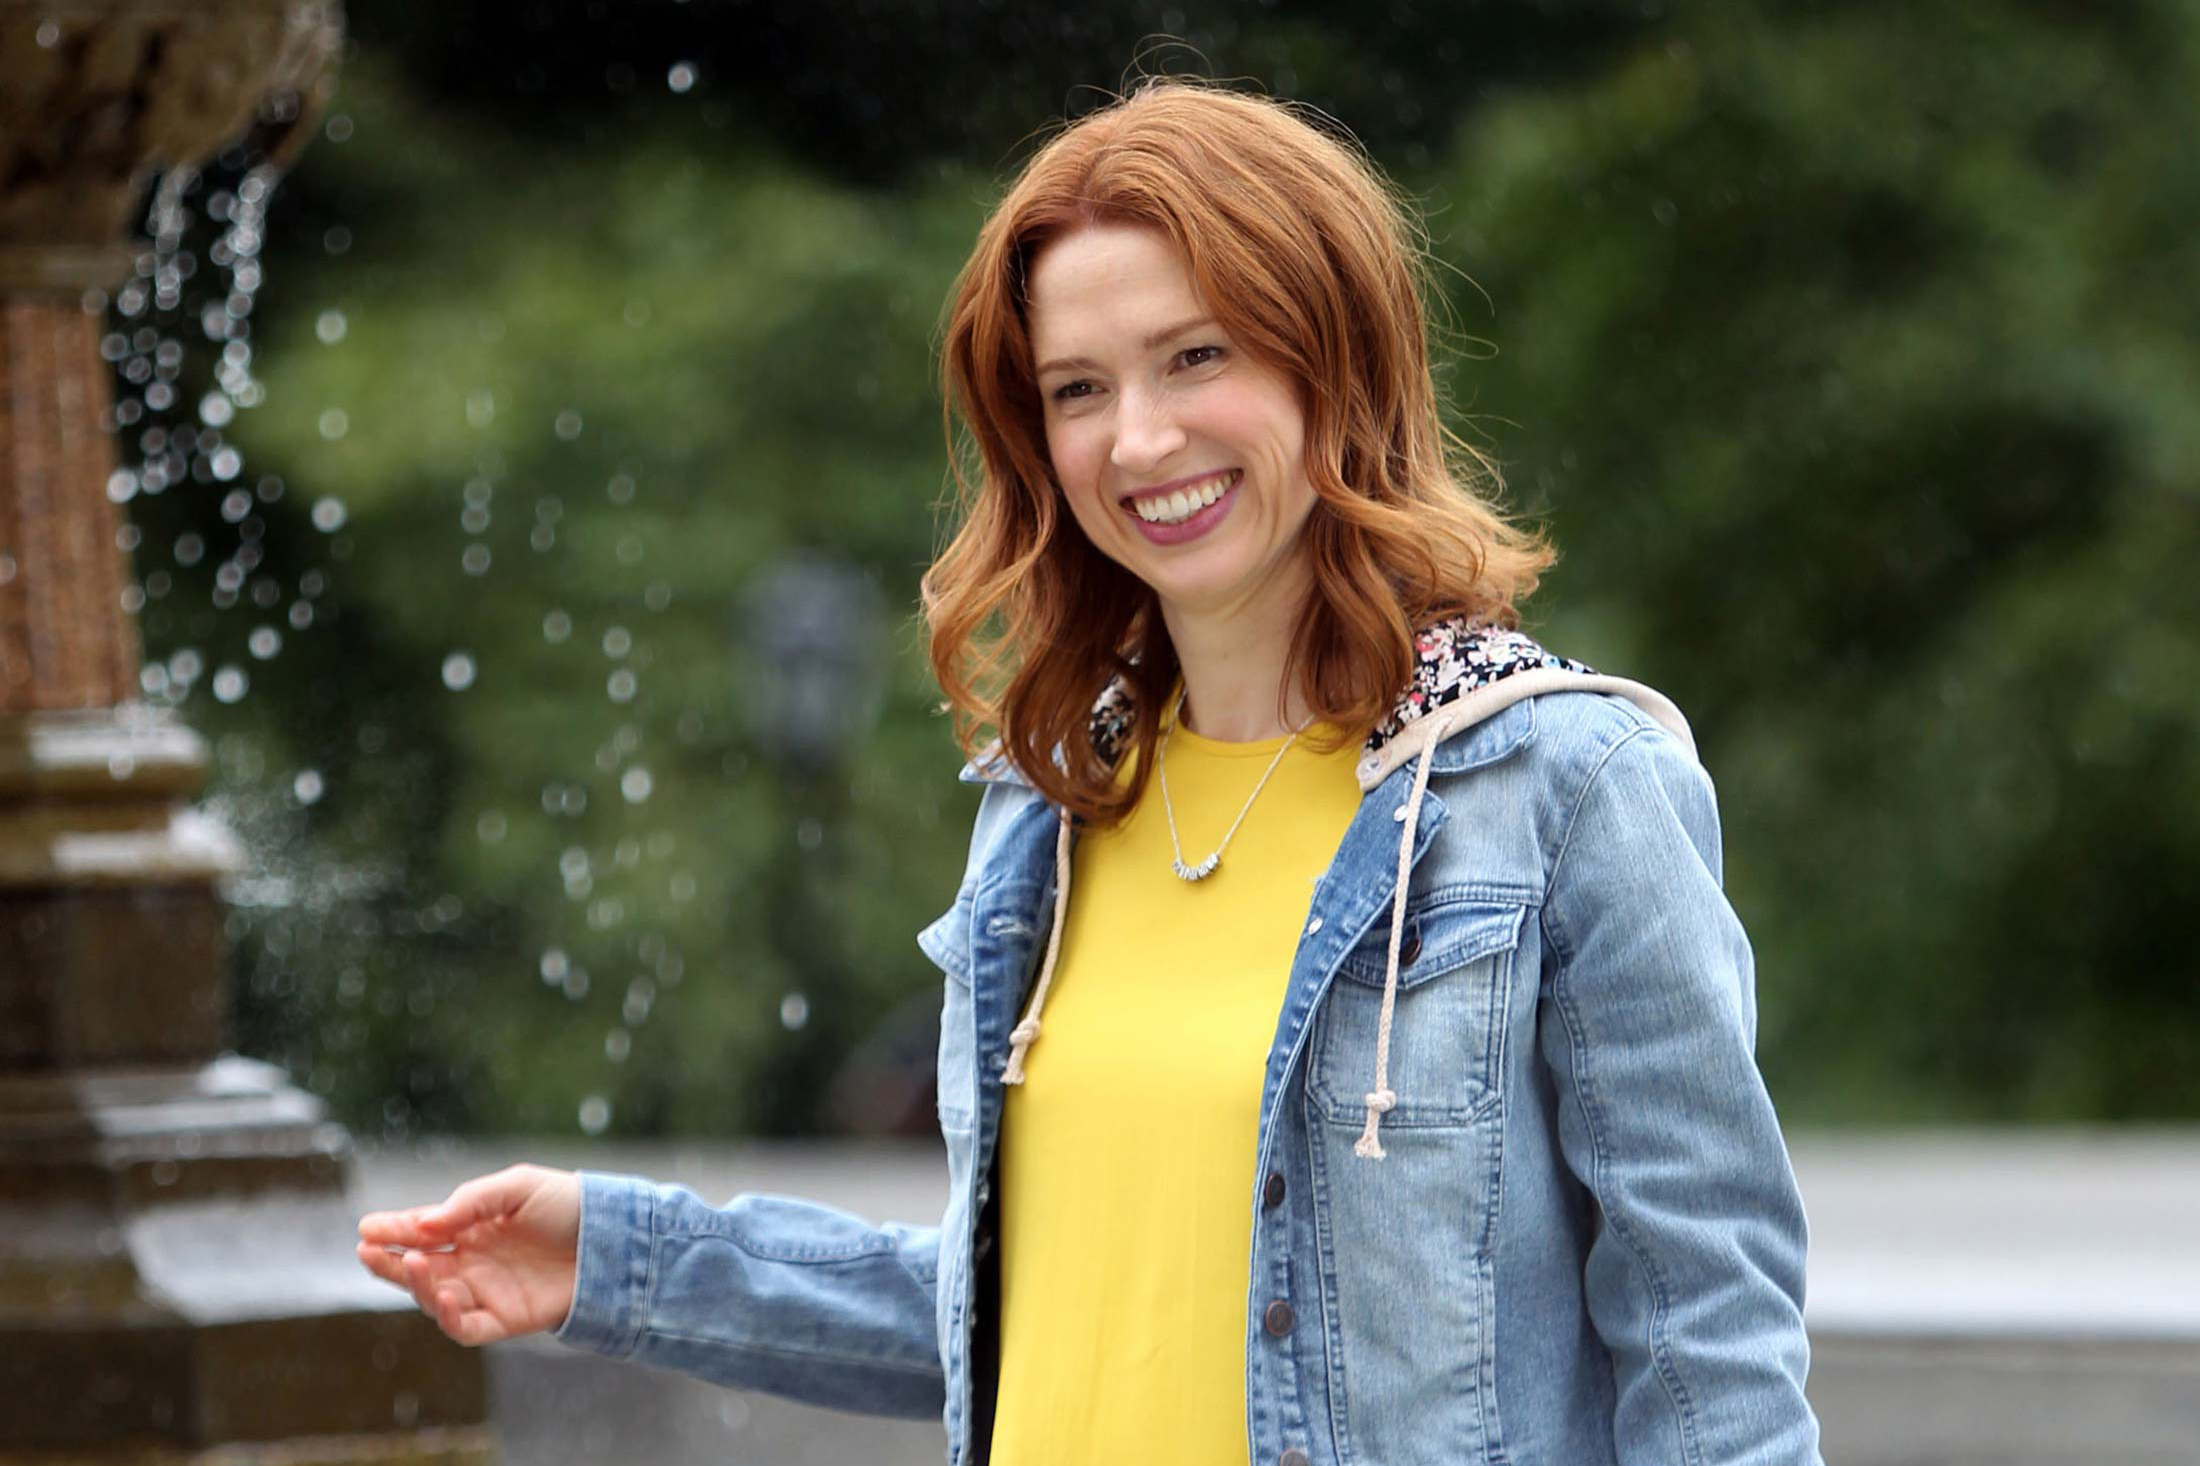 All the life wisdom from 'The Unbreakable Kimmy Schmidt'